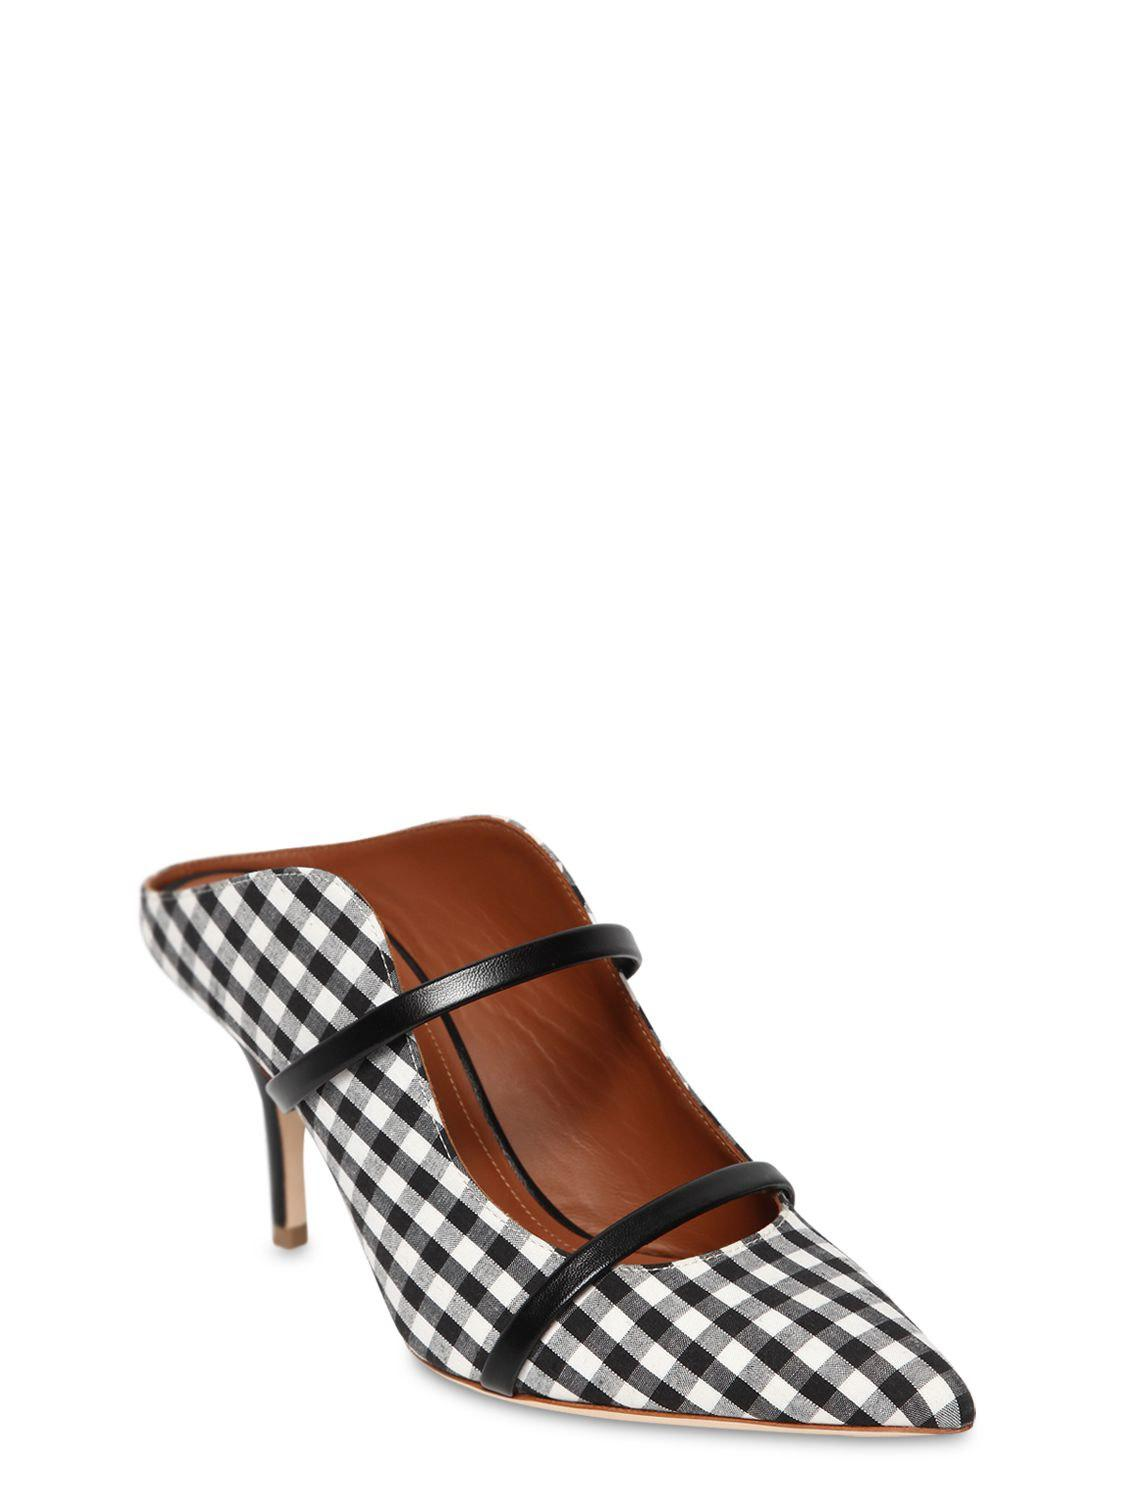 55d004f37e3 Lyst - Malone Souliers 70mm Maureen Gingham   Leather Mules in Black